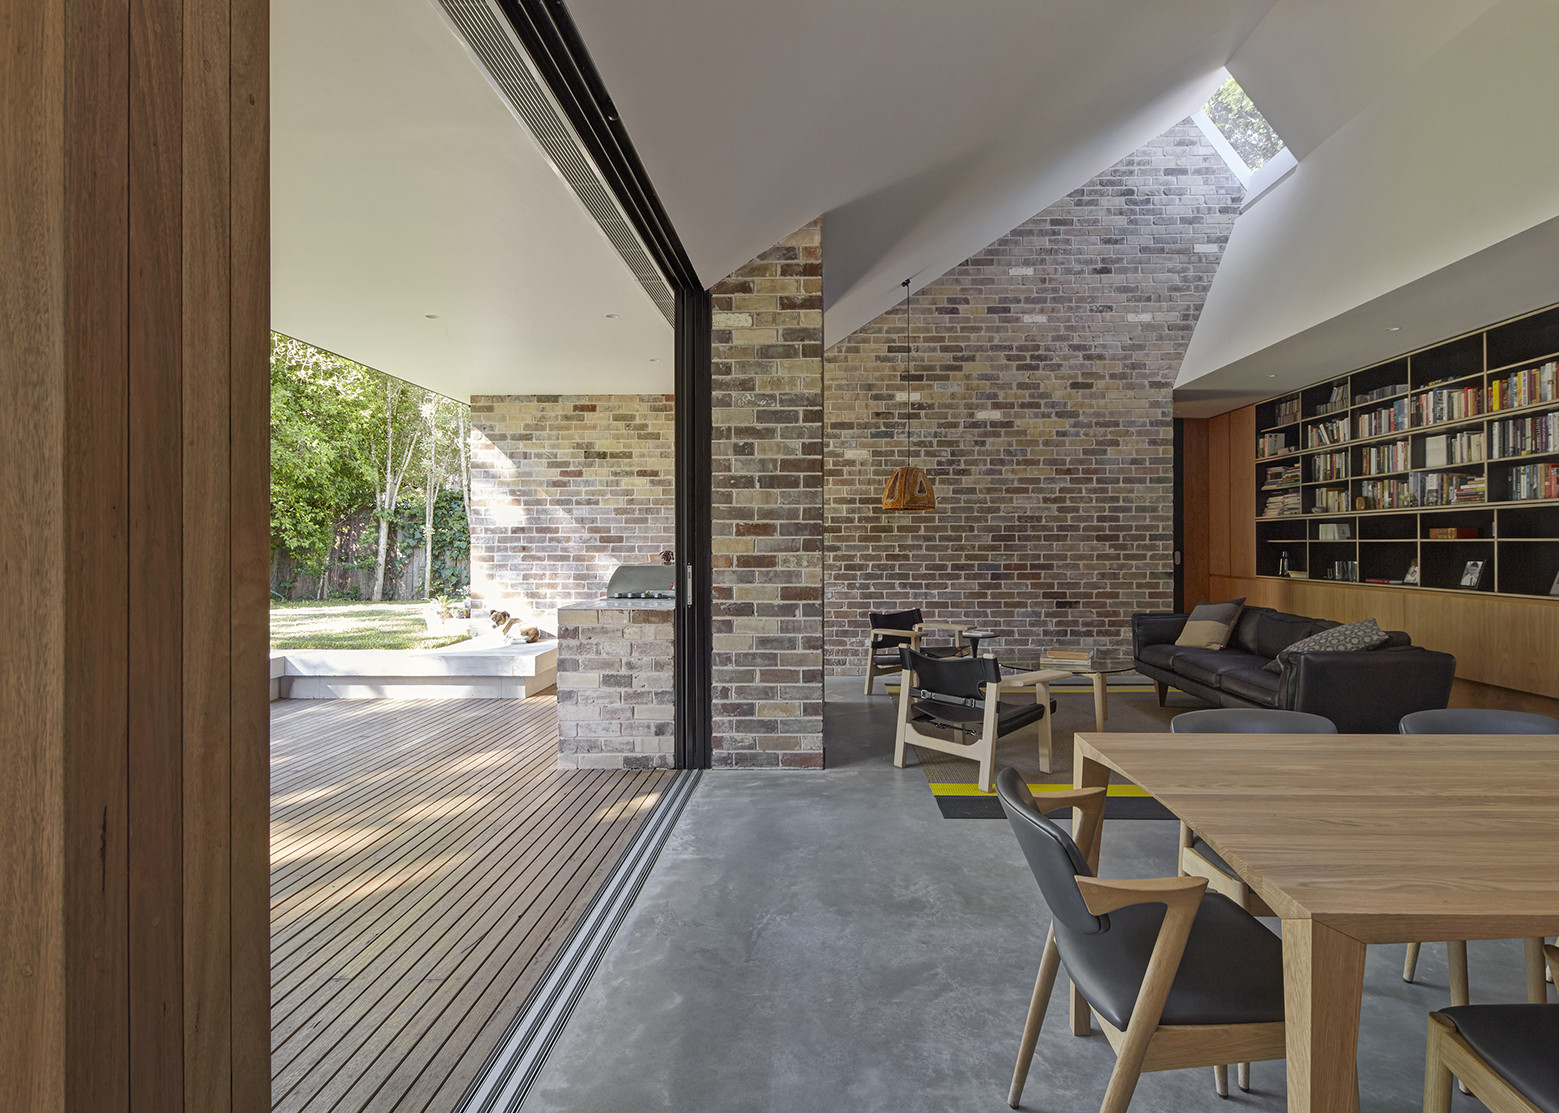 Skylight House / Andrew Burges Architects | ArchDaily on house wall design, house art design, house lighting design, house office design, house attic design, house family room design, house garage design, house rafter design, house eaves design, house porch design, house door design, house deck design, house tile design, house chimney design, house carport design, house roofline design, house bar design, house canopy design, house windows design, house plumbing design,